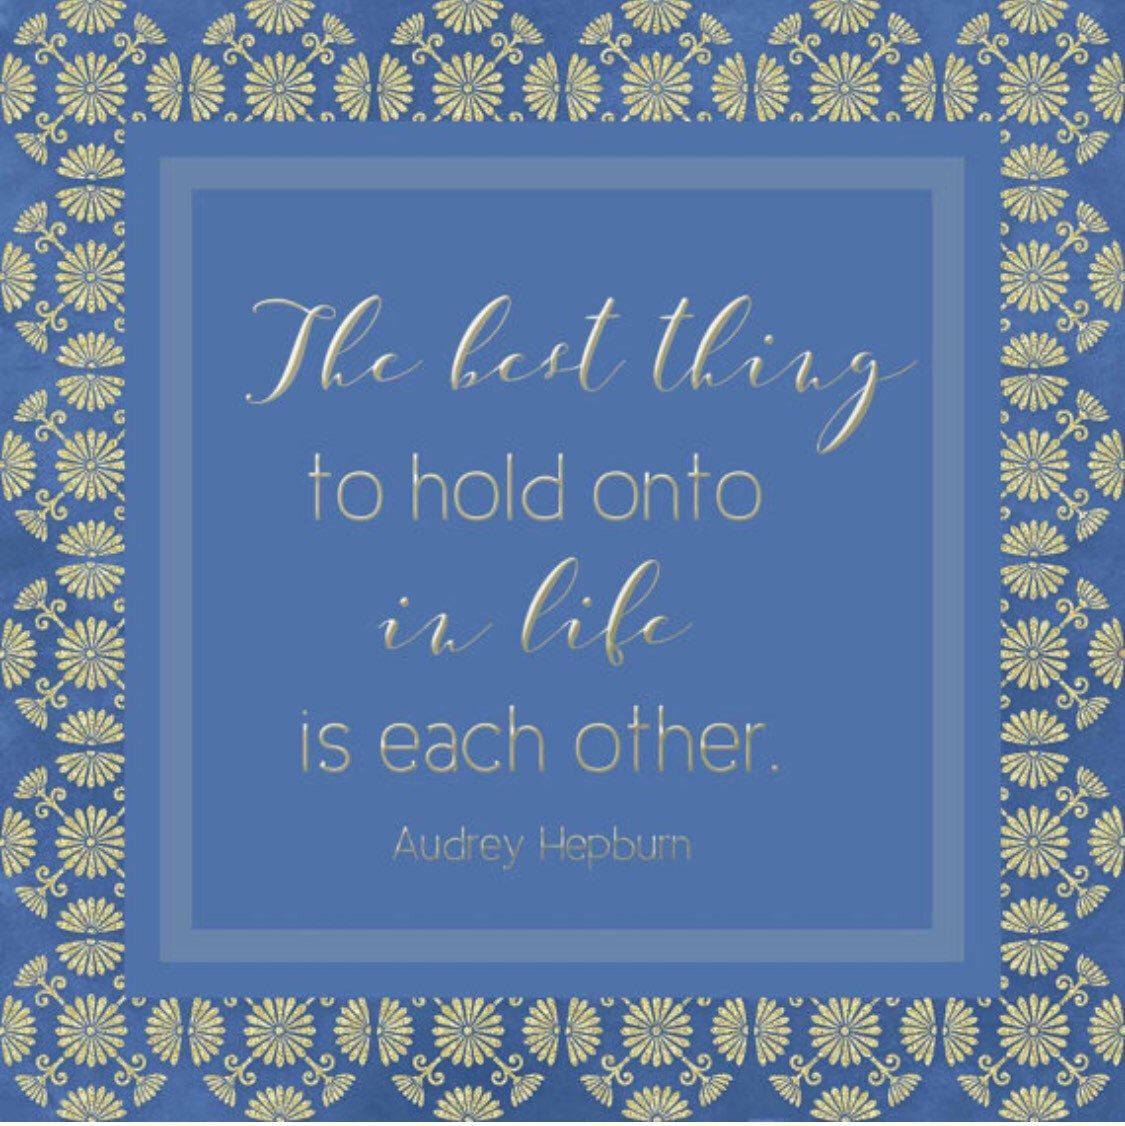 Quotes all about love and relationships. All of my digital quotes are available as PNG images. They can be resized and we colored. It's an easy way to create cards, posters, planner stickers, layouts and more.